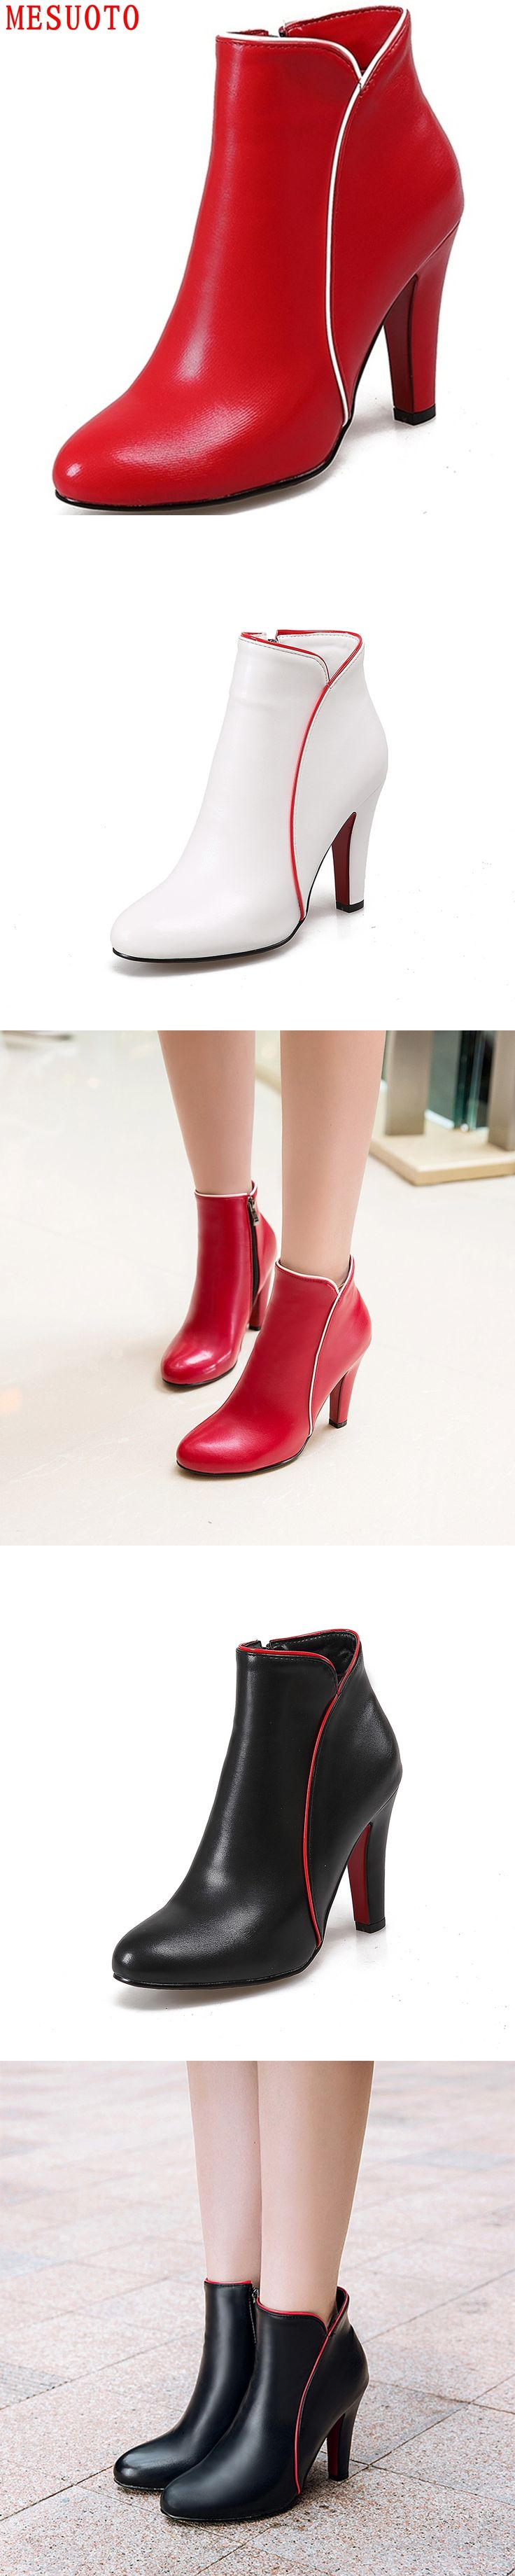 MESUOTO Quality Faux Leather Zip Thick High Heel Fashion Style Womens Ankle Boots Autumn Elegant Ladies Shoes Bigger Size 43